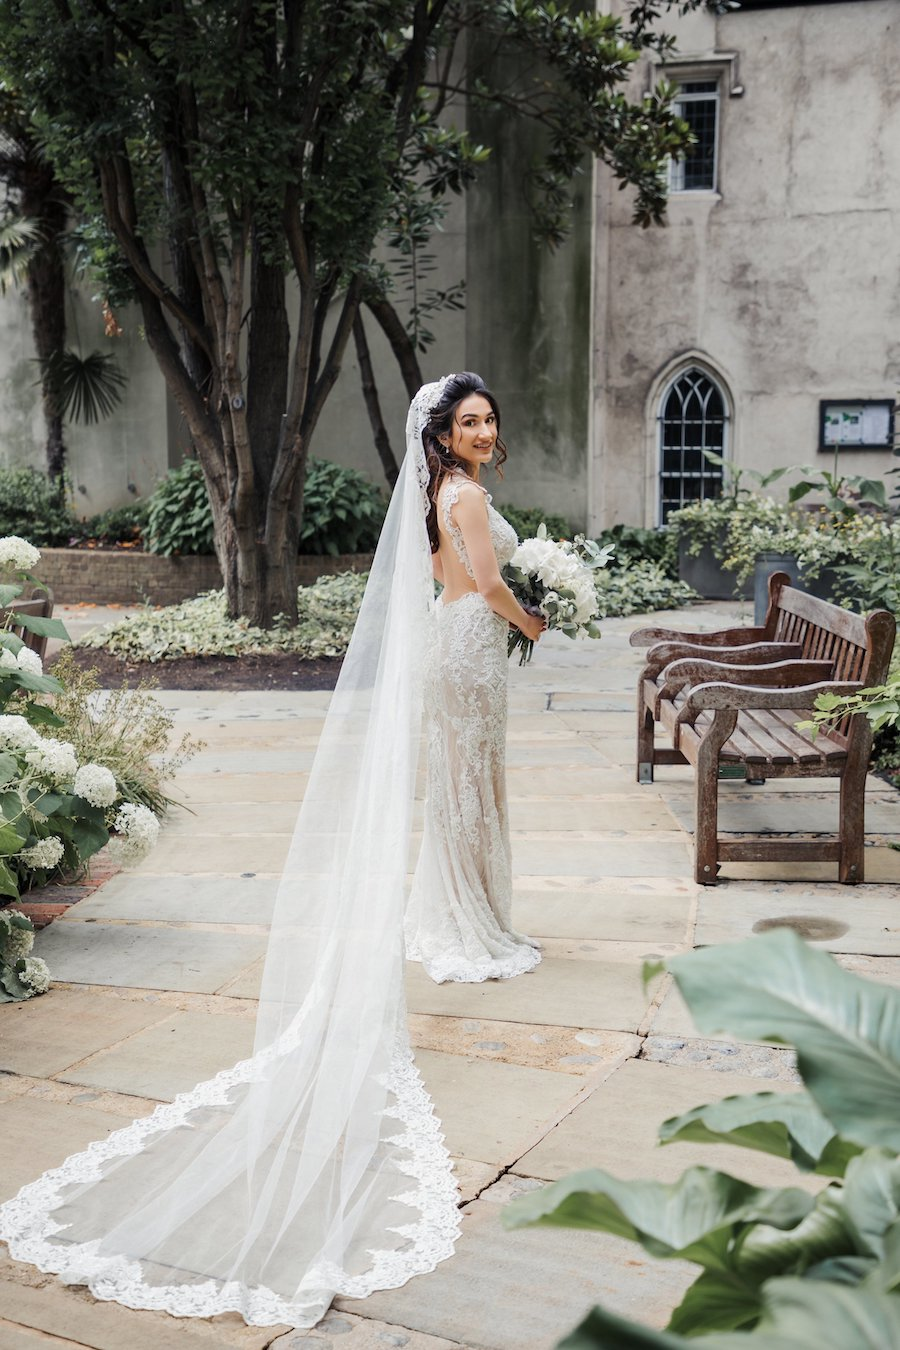 Naama and Anat, Naama and Anat Haute Couture, couture wedding gown, wedding dress, Lavish London Wedding, Goddess Gown, Coban Wedding Photography